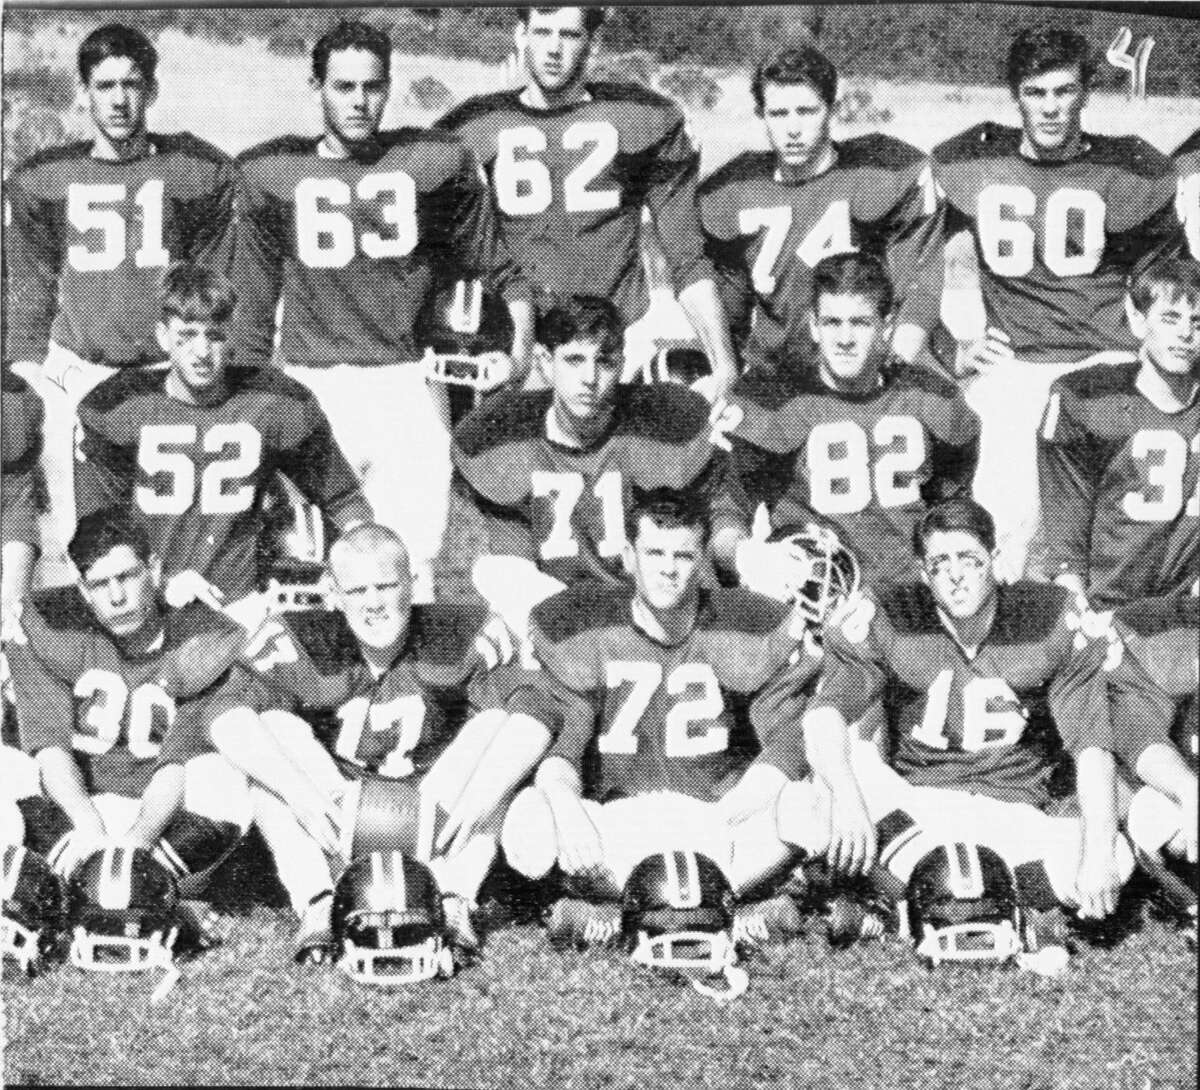 Herbert Mullin, who would later become a notorious serial killer, was a varsity football player in high school, and voted most likely to succeed by his graduating class.